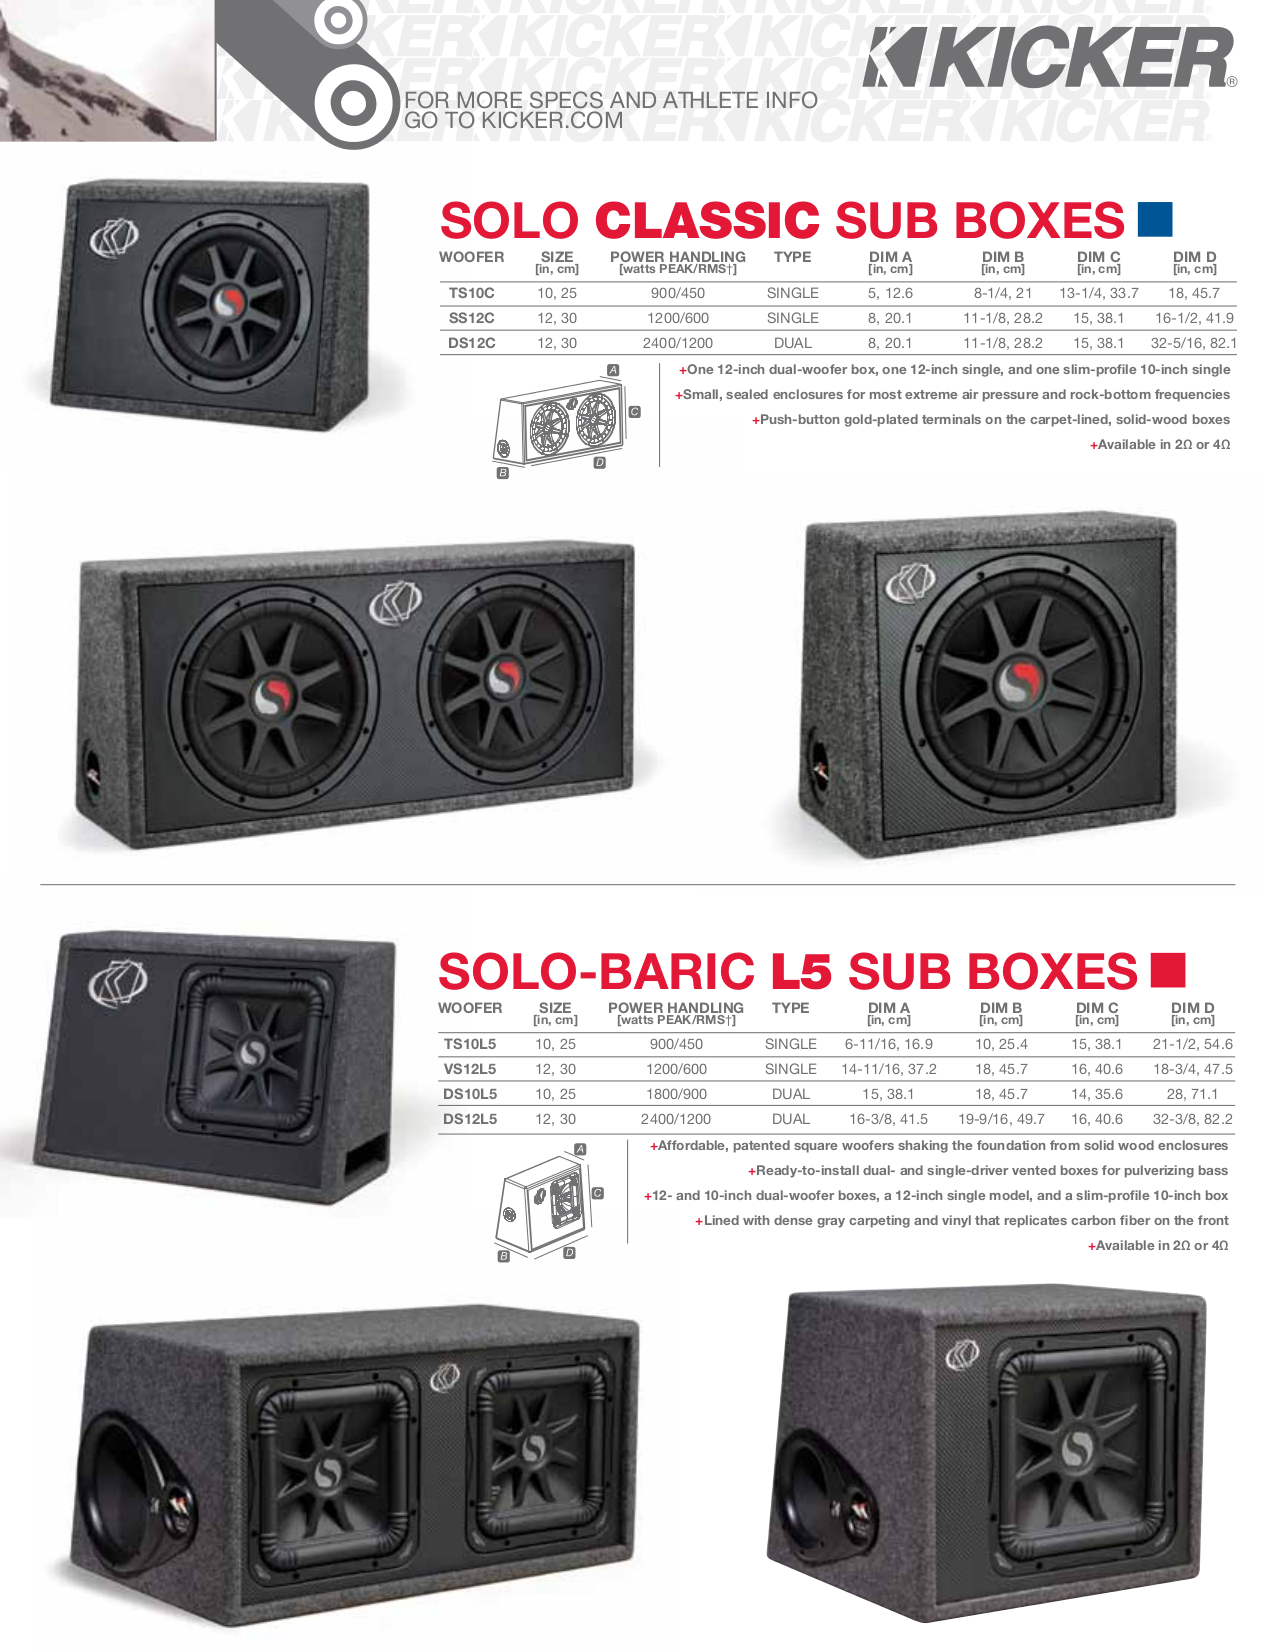 ... Kicker Subwoofer Solo Classic TS10C pdf page preview ...